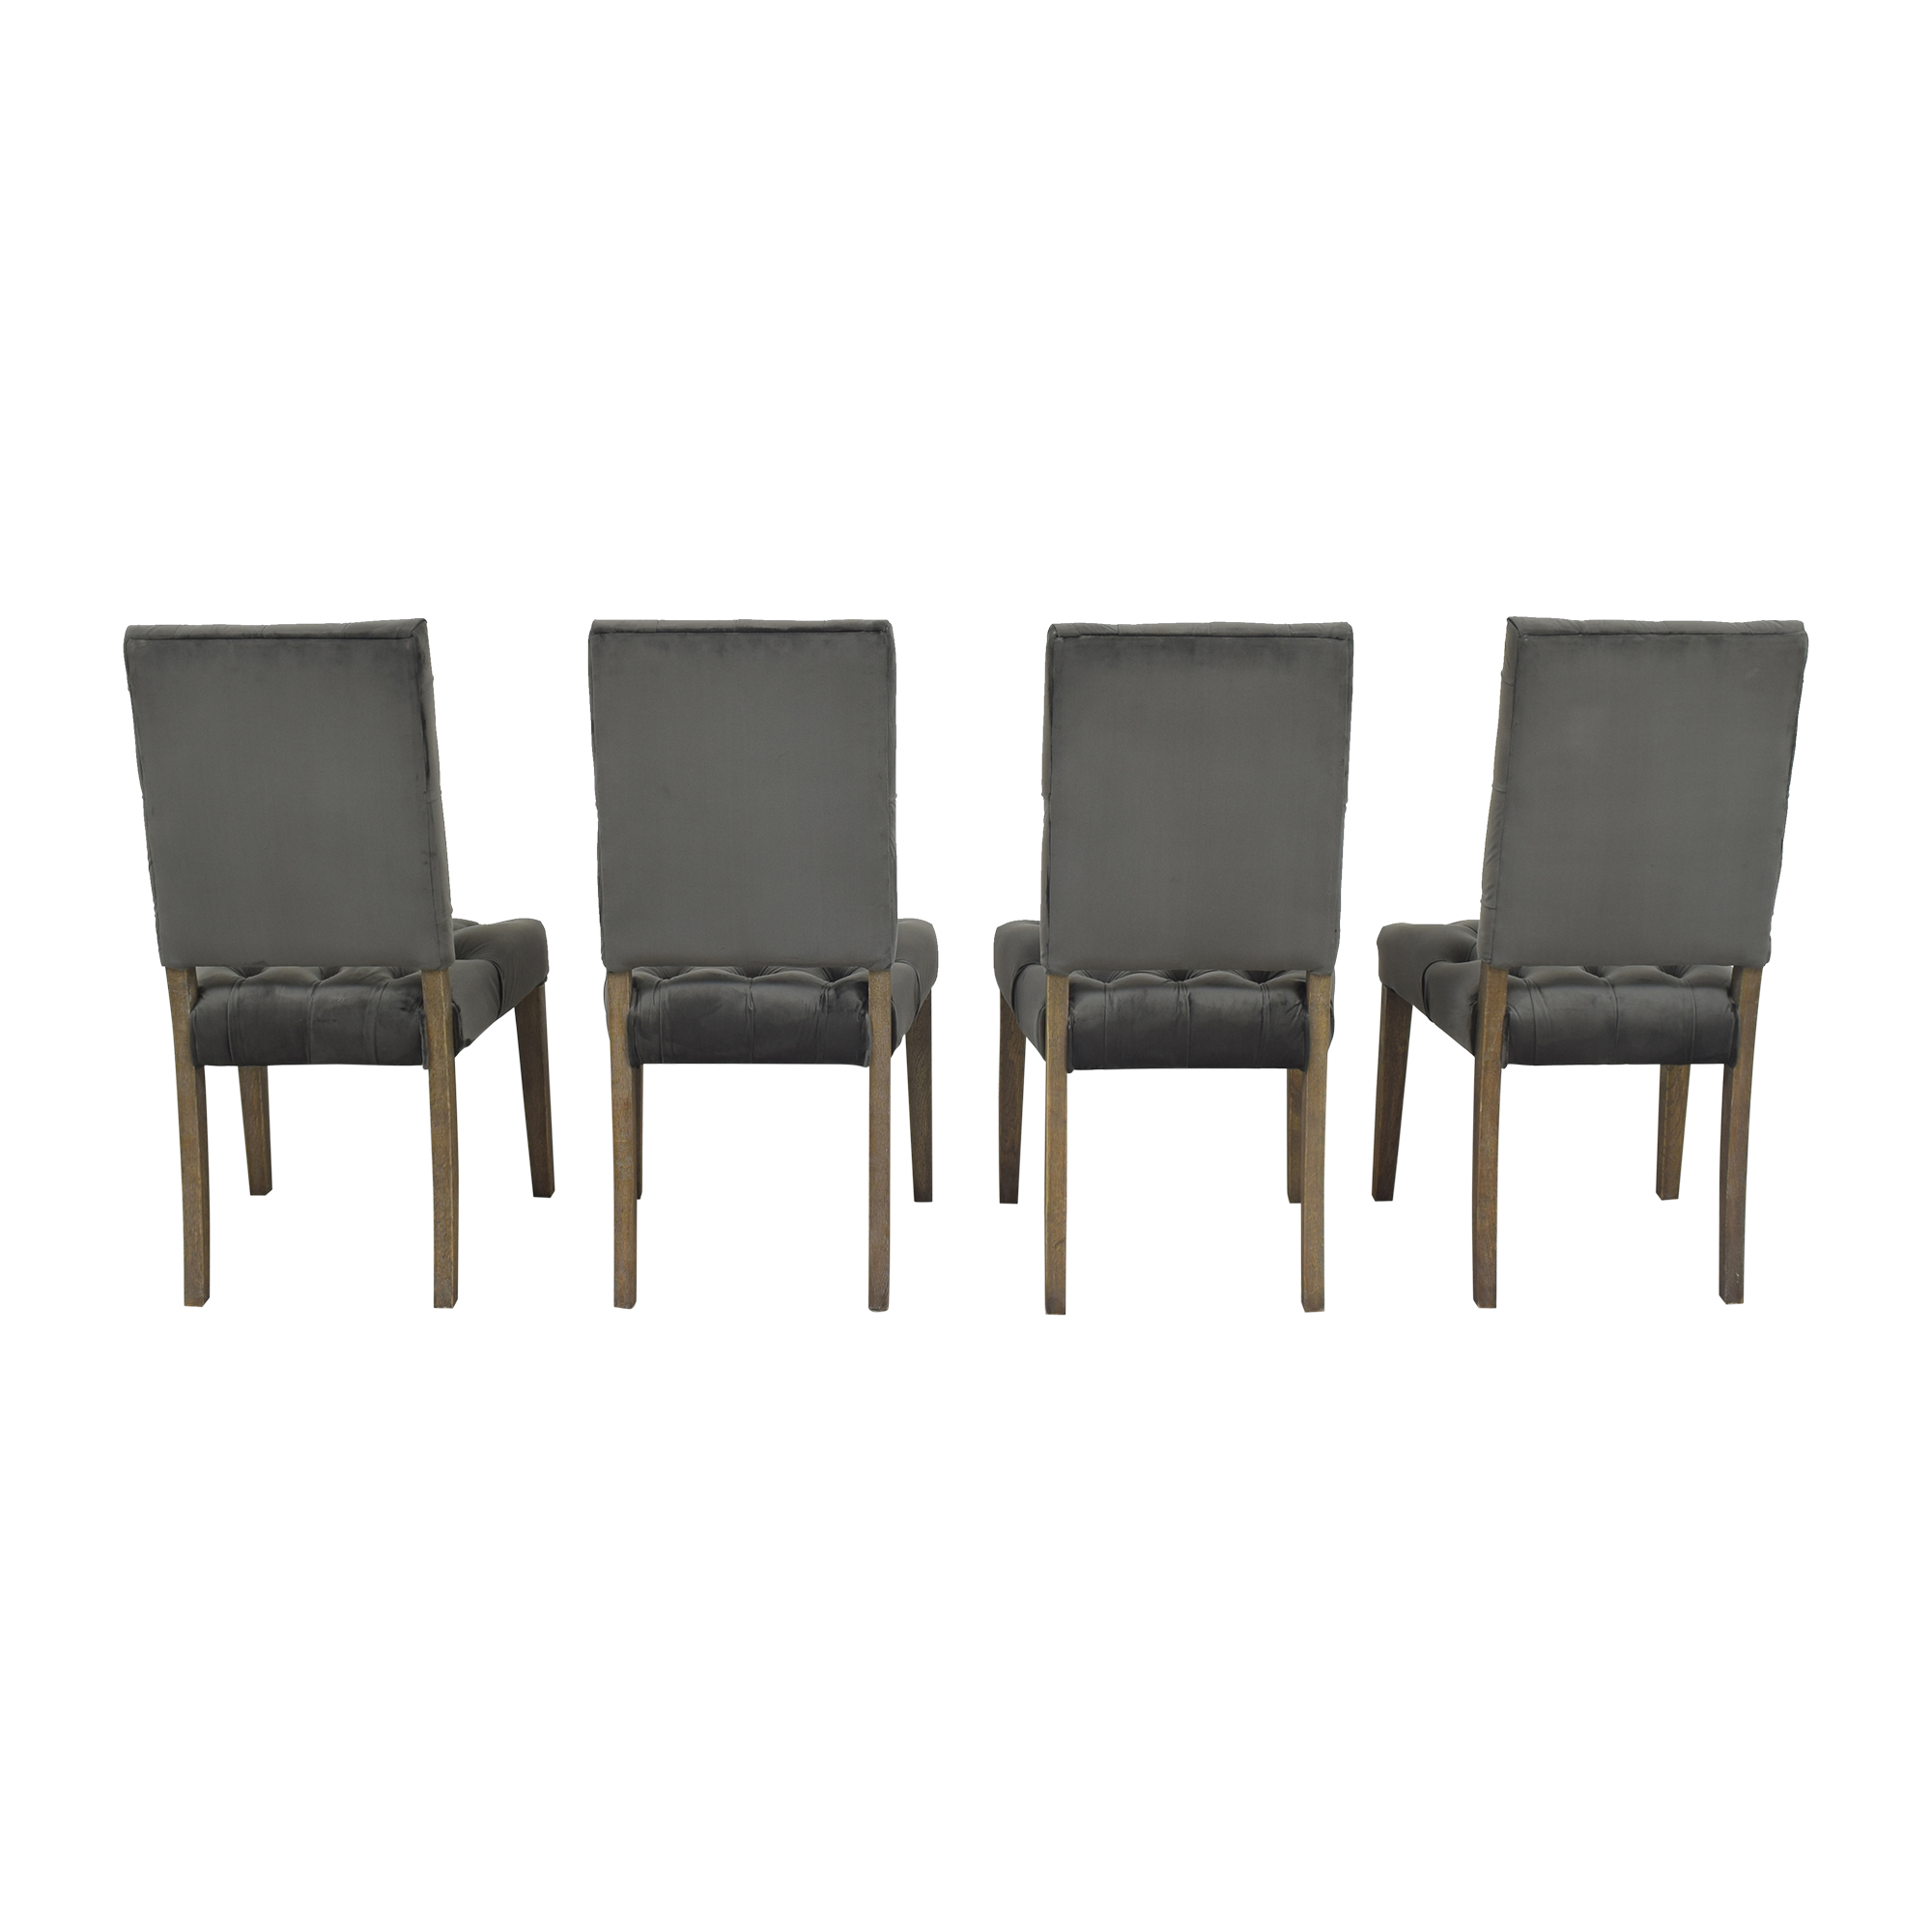 Christopher Knight Home Christopher Knight Home Saltillo Dining Chairs pa